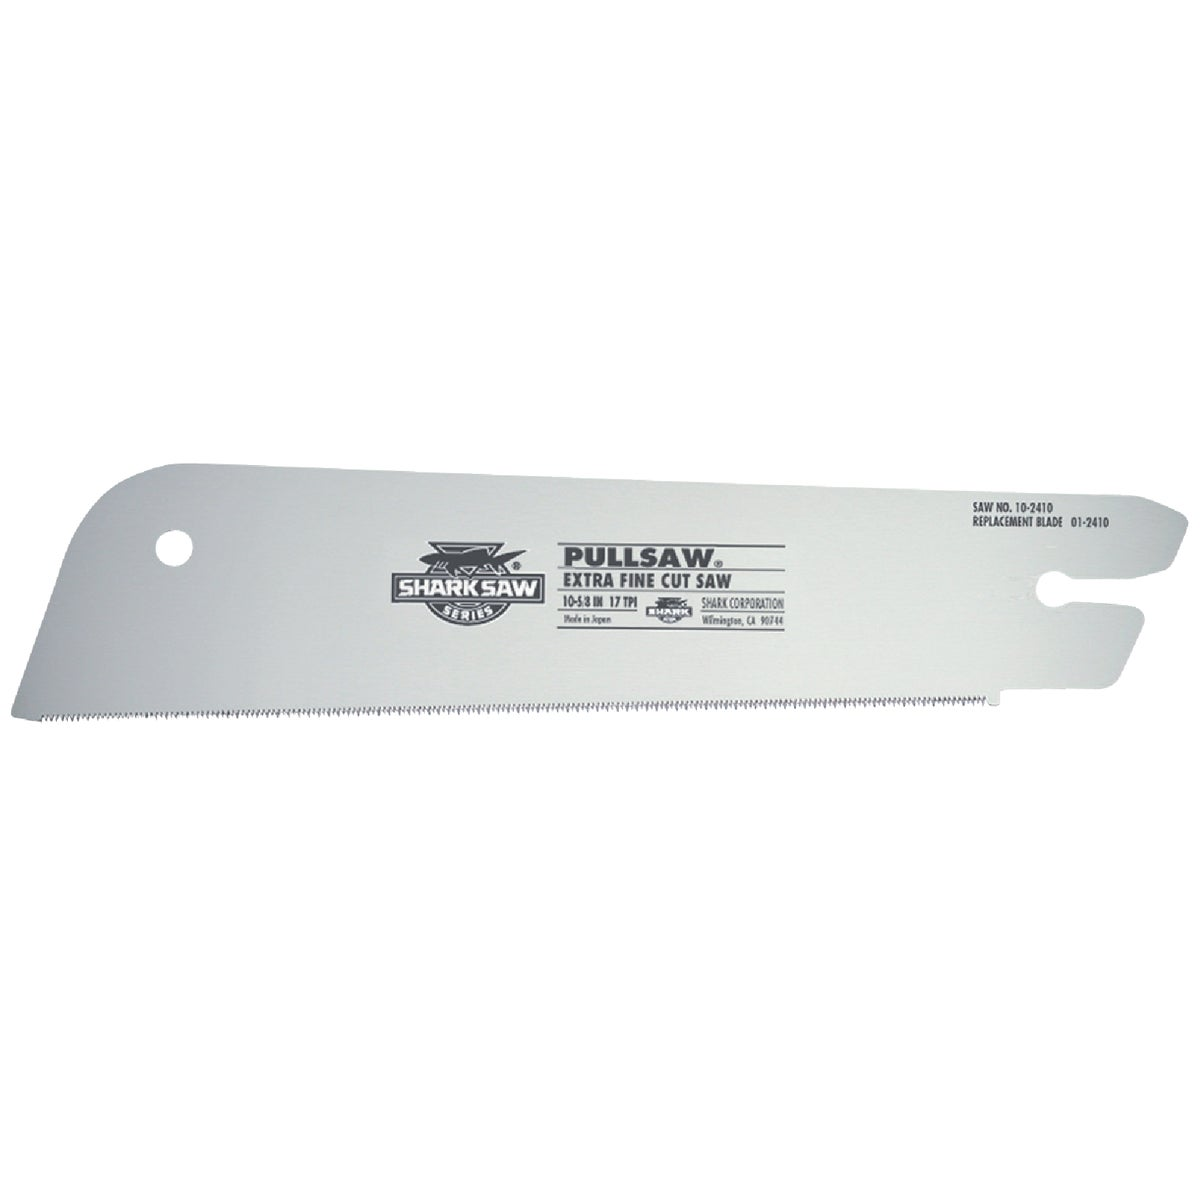 """10-5/8"""" REPLACEMNT BLADE - 01-2410 by Shark Corporation"""